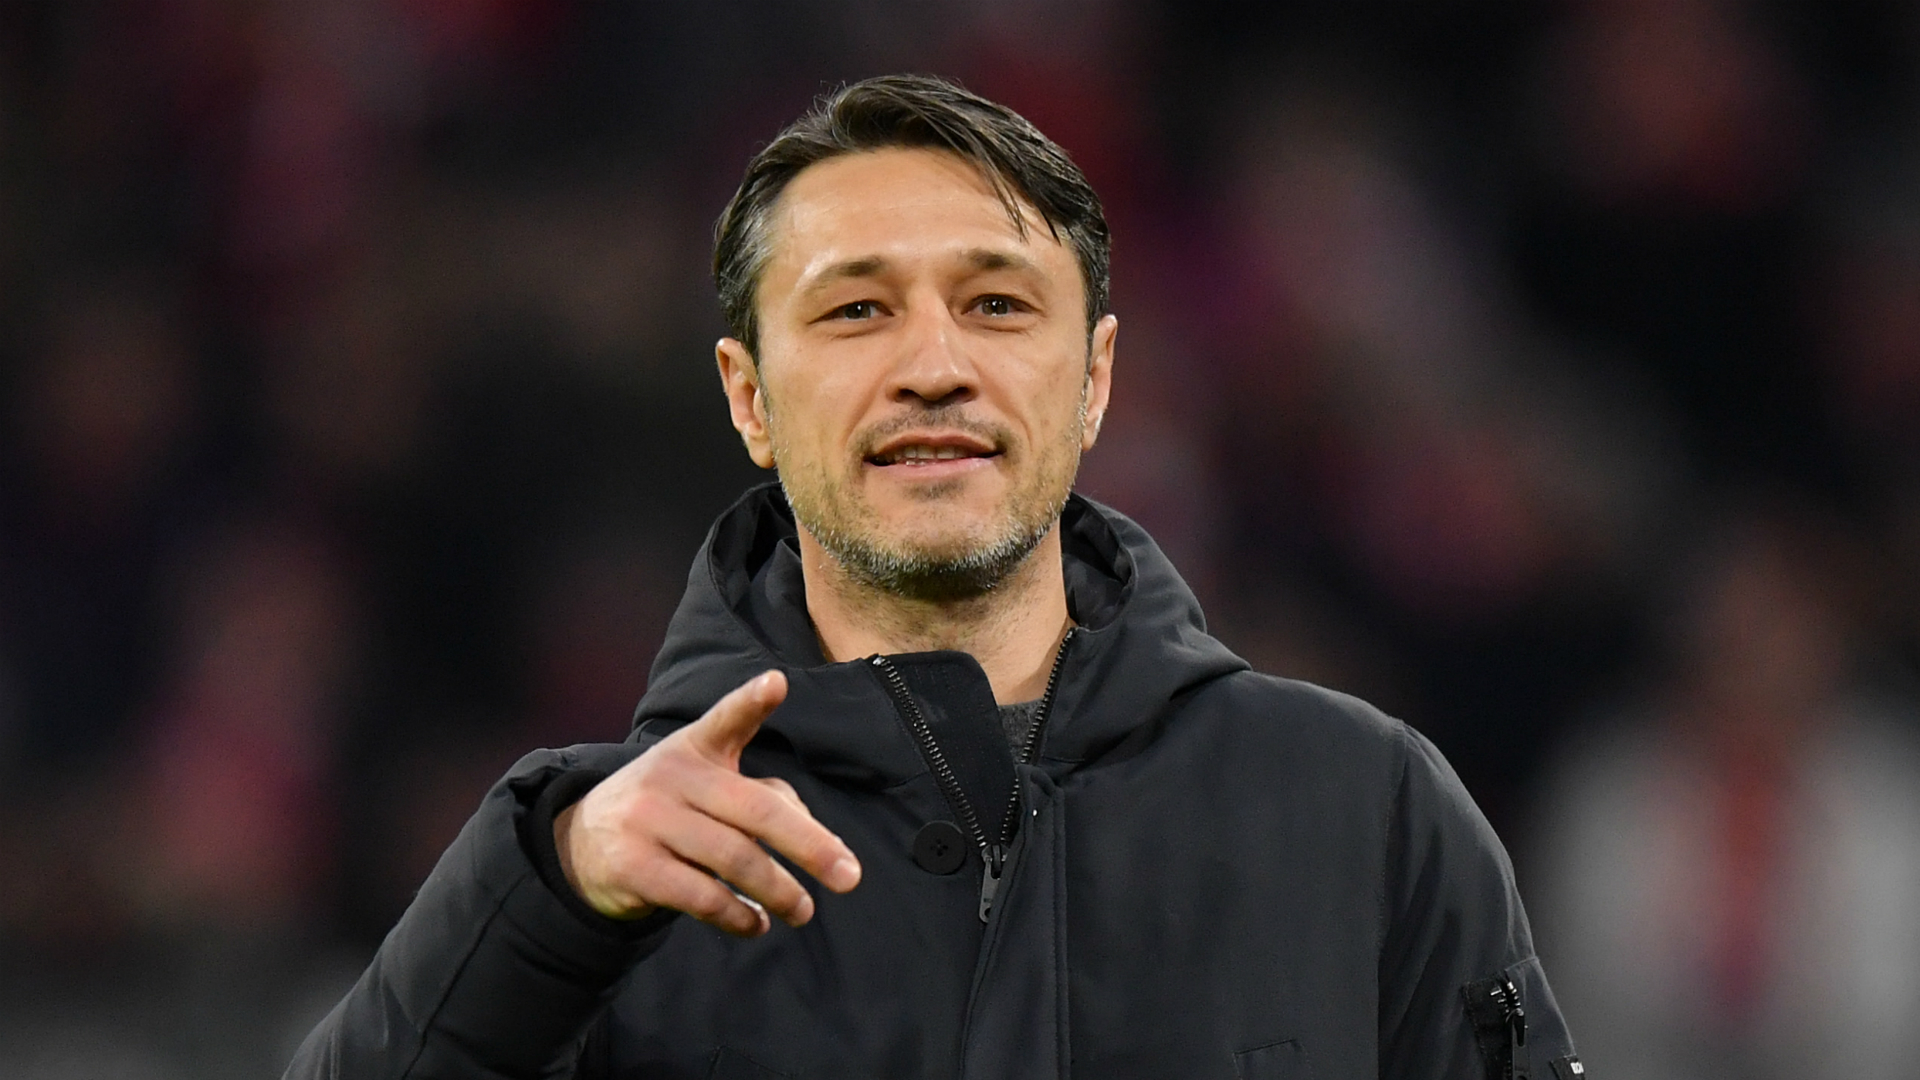 Kovac's Bayern future not in question - Rummenigge